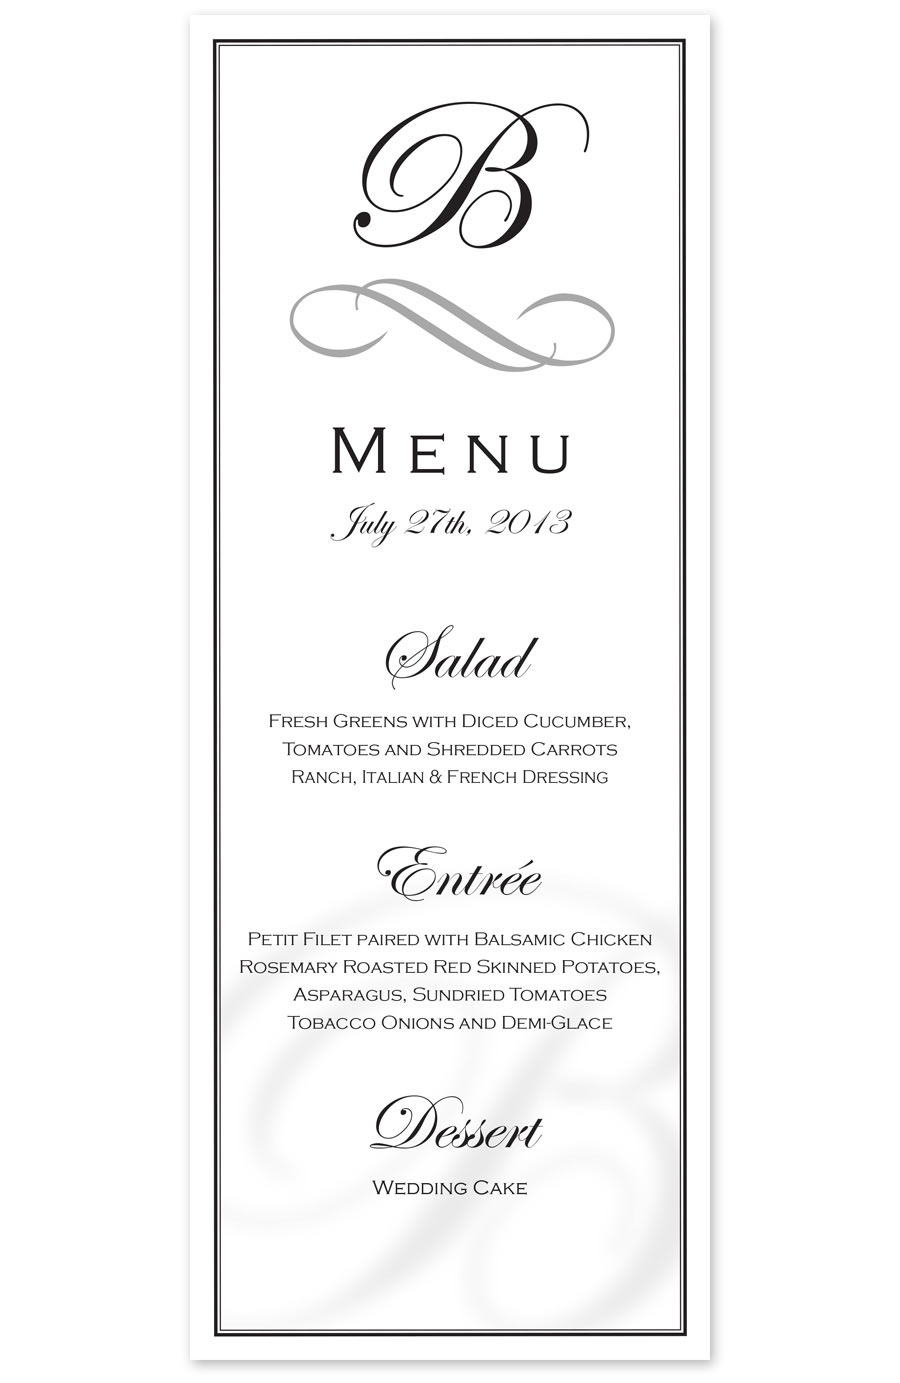 Ryan Sellick Graphic Design Wedding Dinner Menu 2013